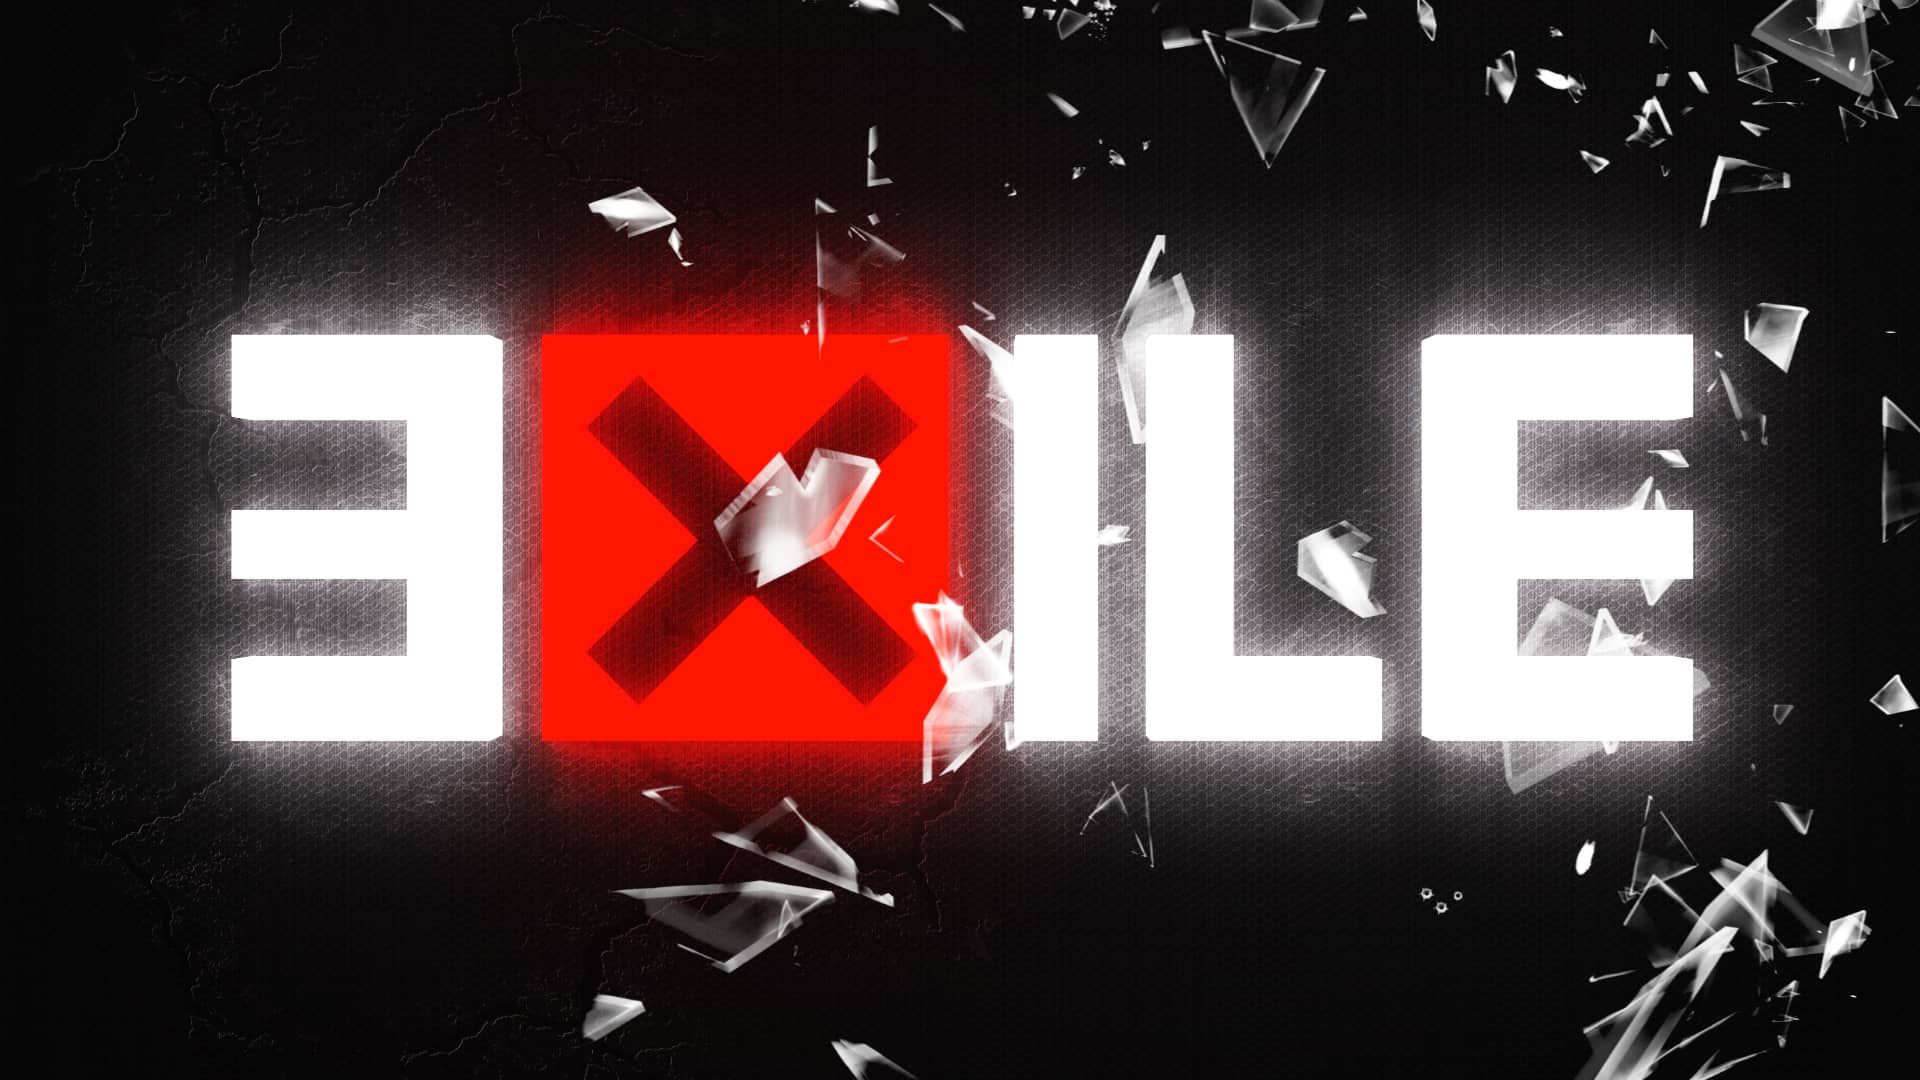 exile-background